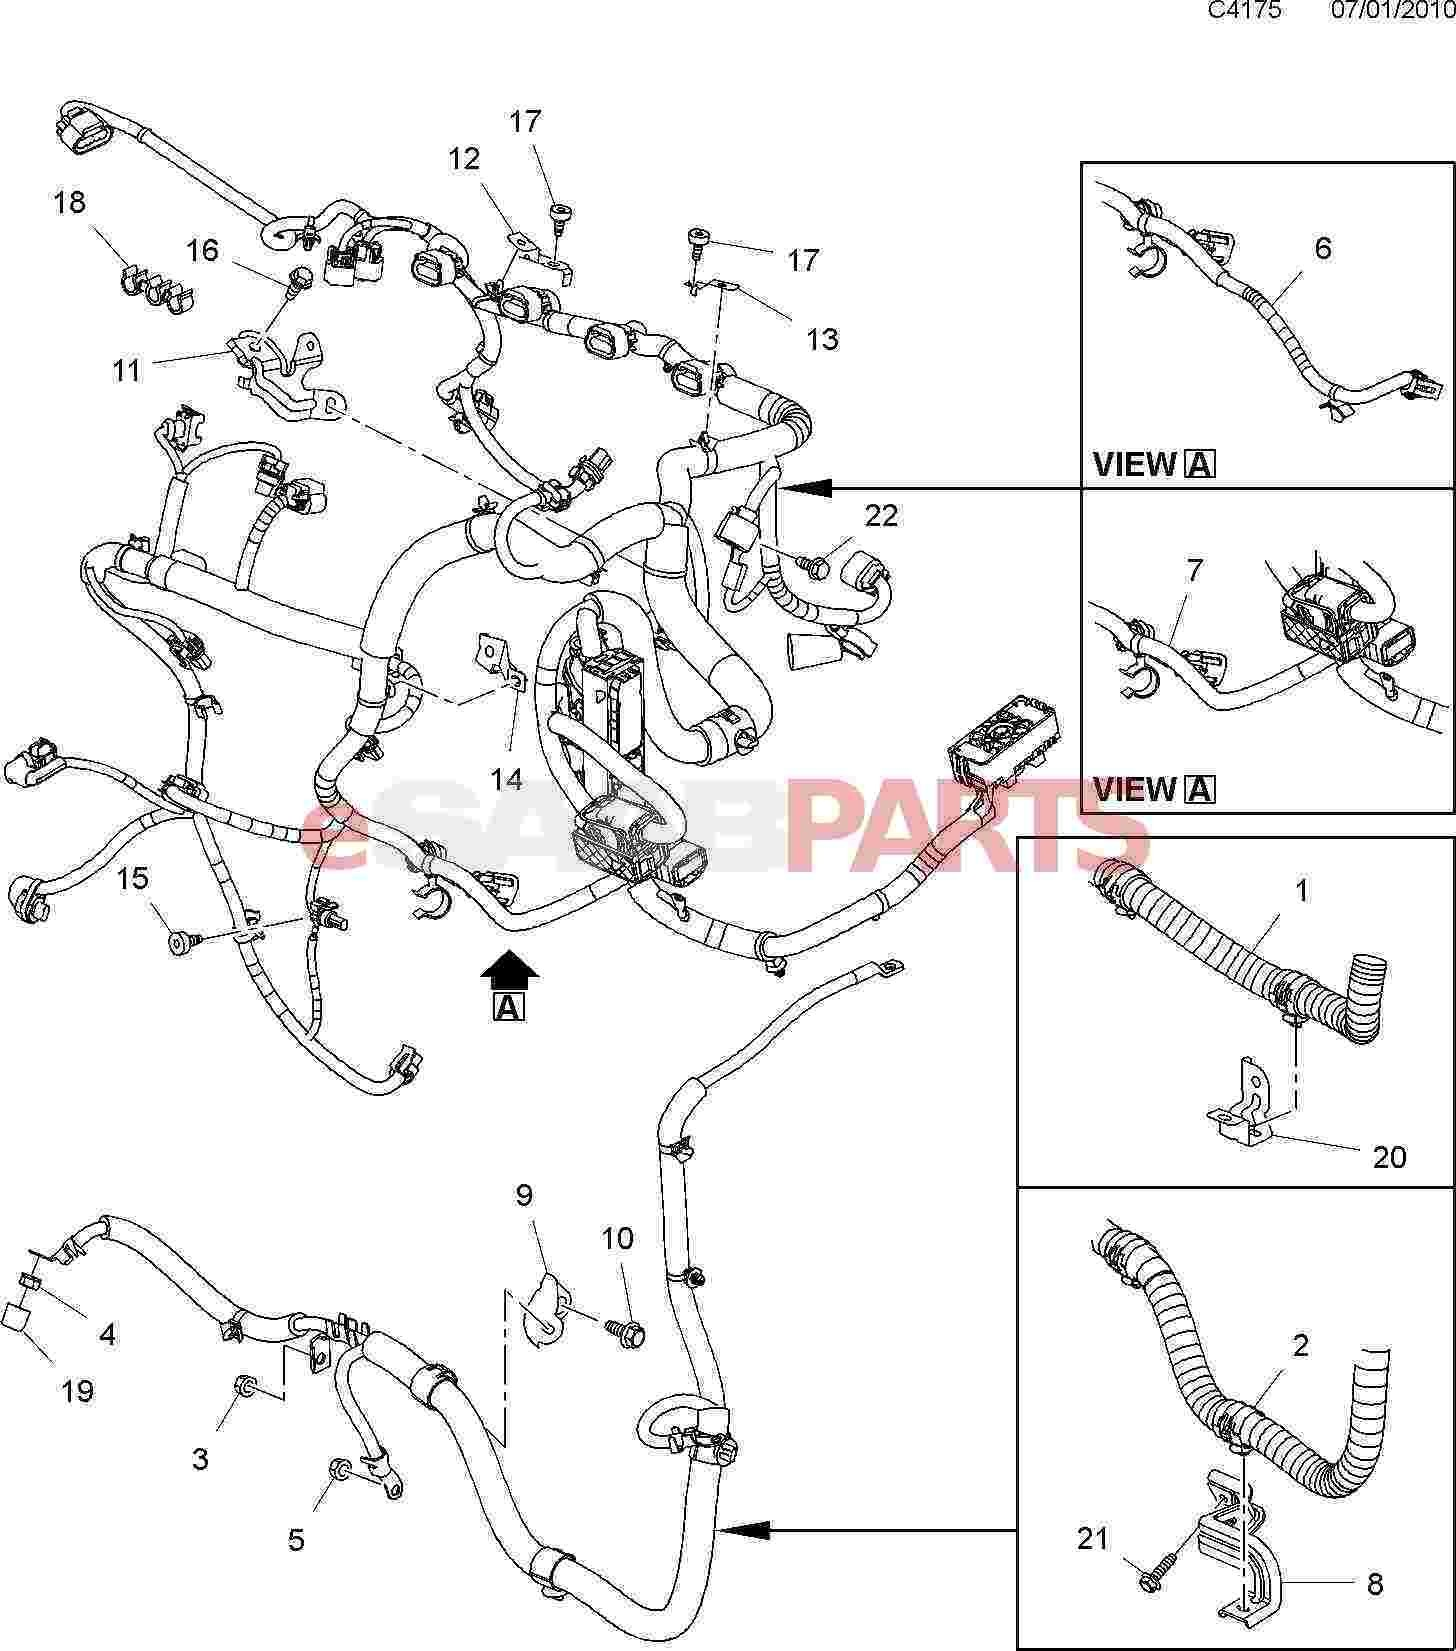 2003 saab 9 5 engine diagram wiring library. Black Bedroom Furniture Sets. Home Design Ideas